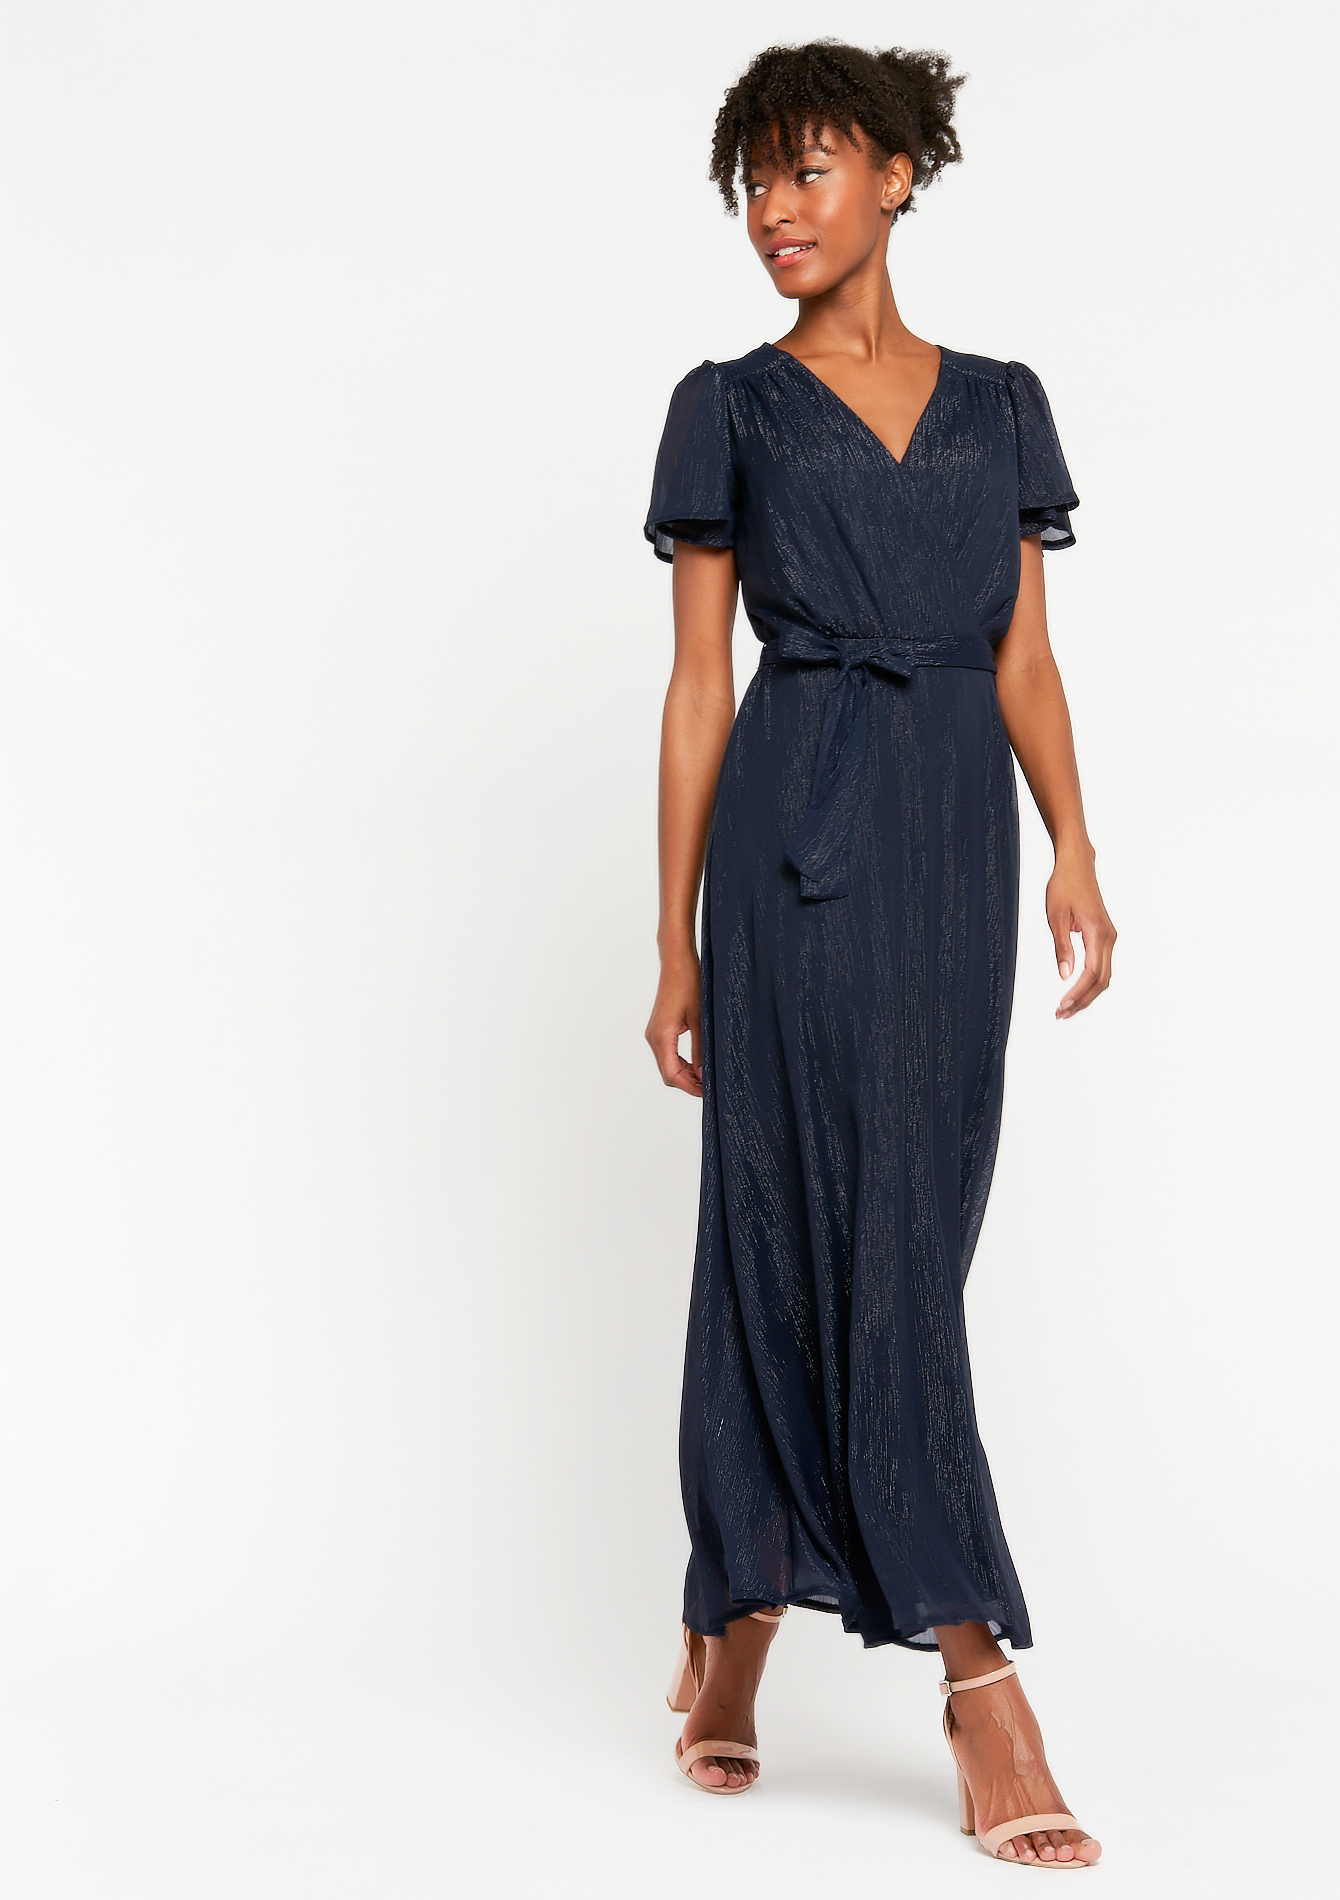 Maxi dress with short sleeves and belt - NAVY BLUE - 08601295_1651